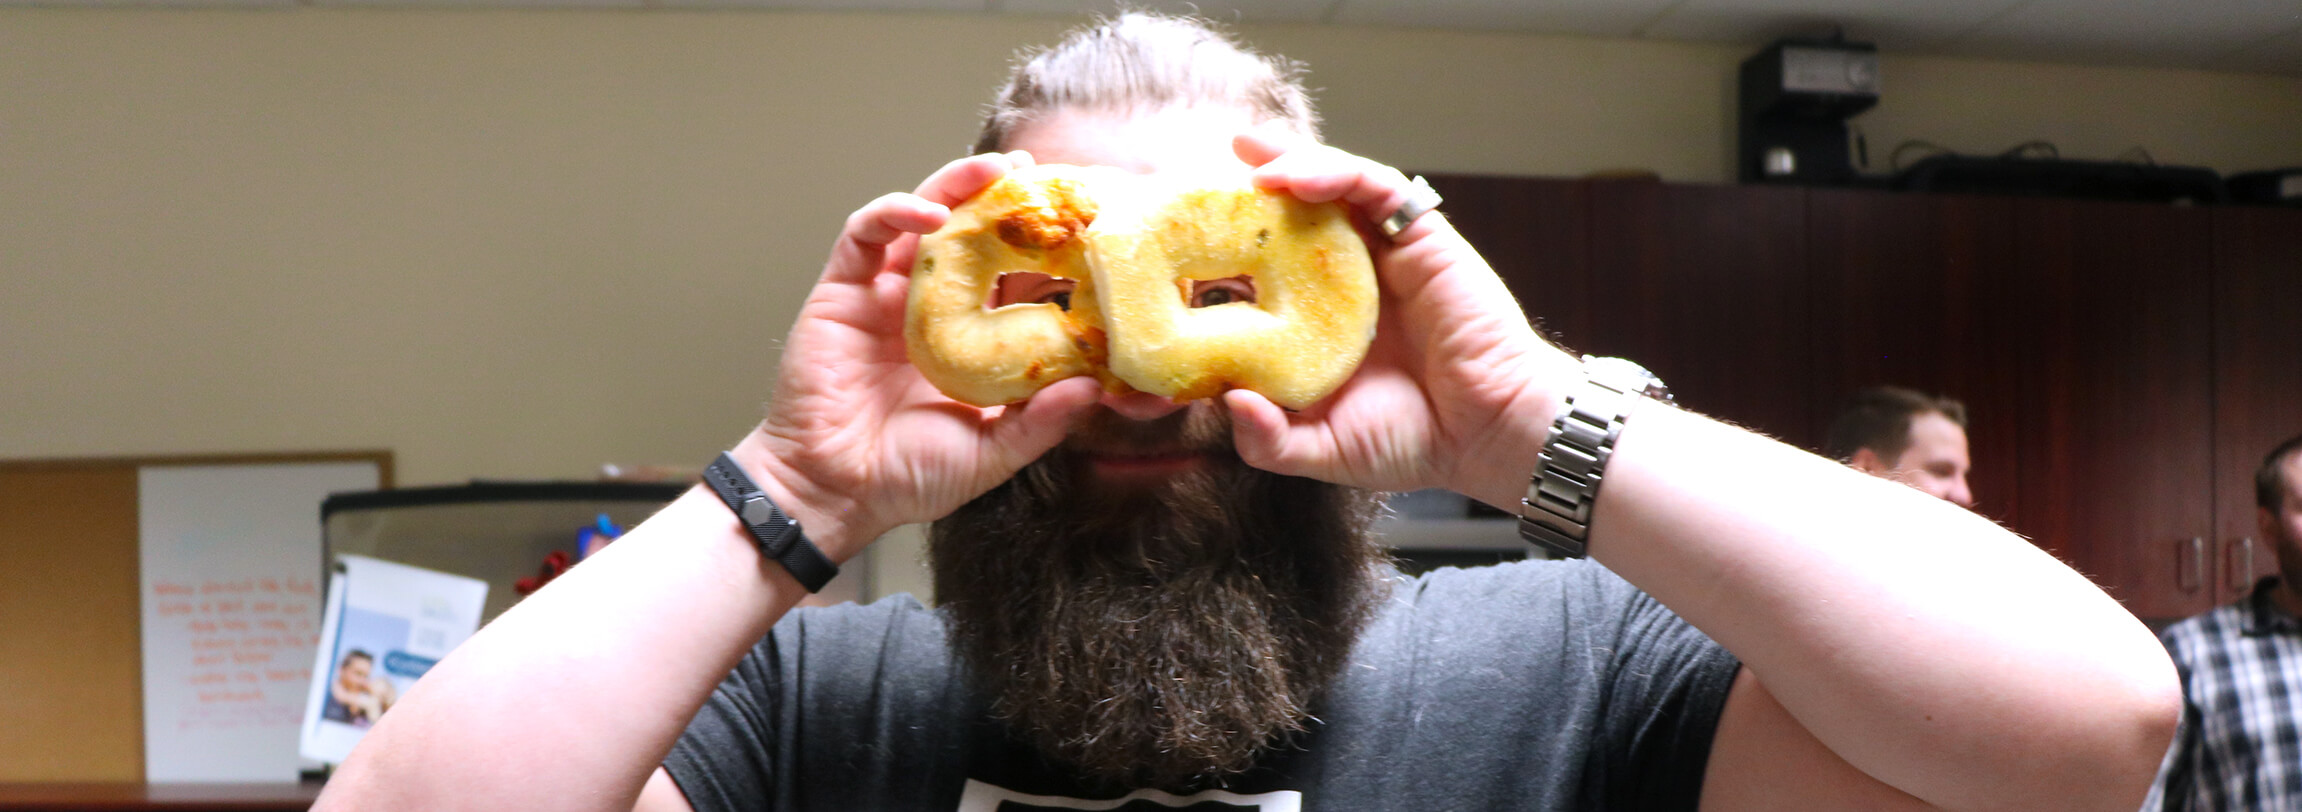 Maplewave employee holding bagels up to make pretend eye glasses